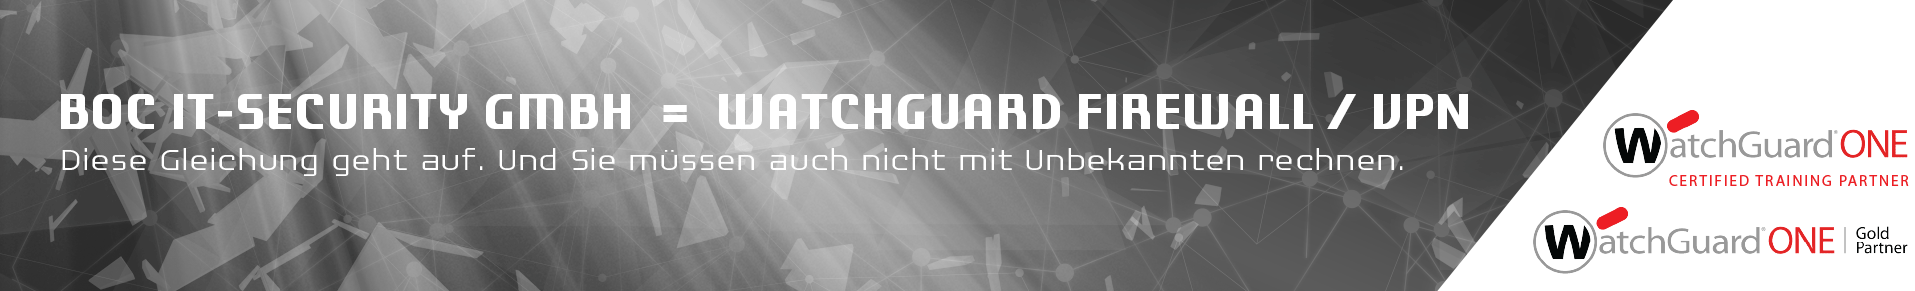 WatchGuard Gold Partner. BOC IT Security GmbH = WatchGuard Firewall/VPN